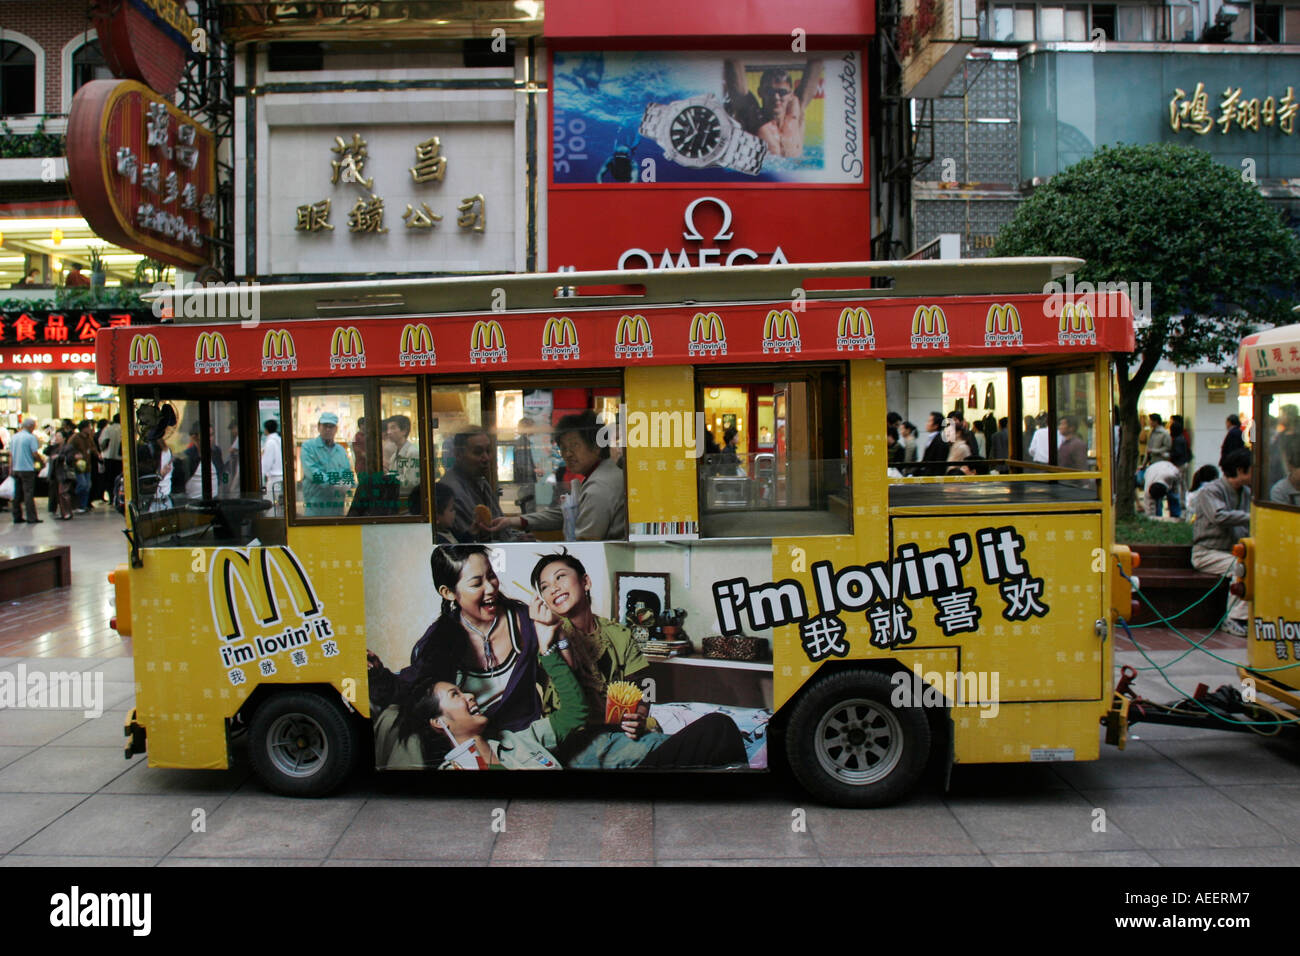 Shanghai China - one of the mini trains taking pedestrians along the now pedestrianized Nanjing Road - Stock Image